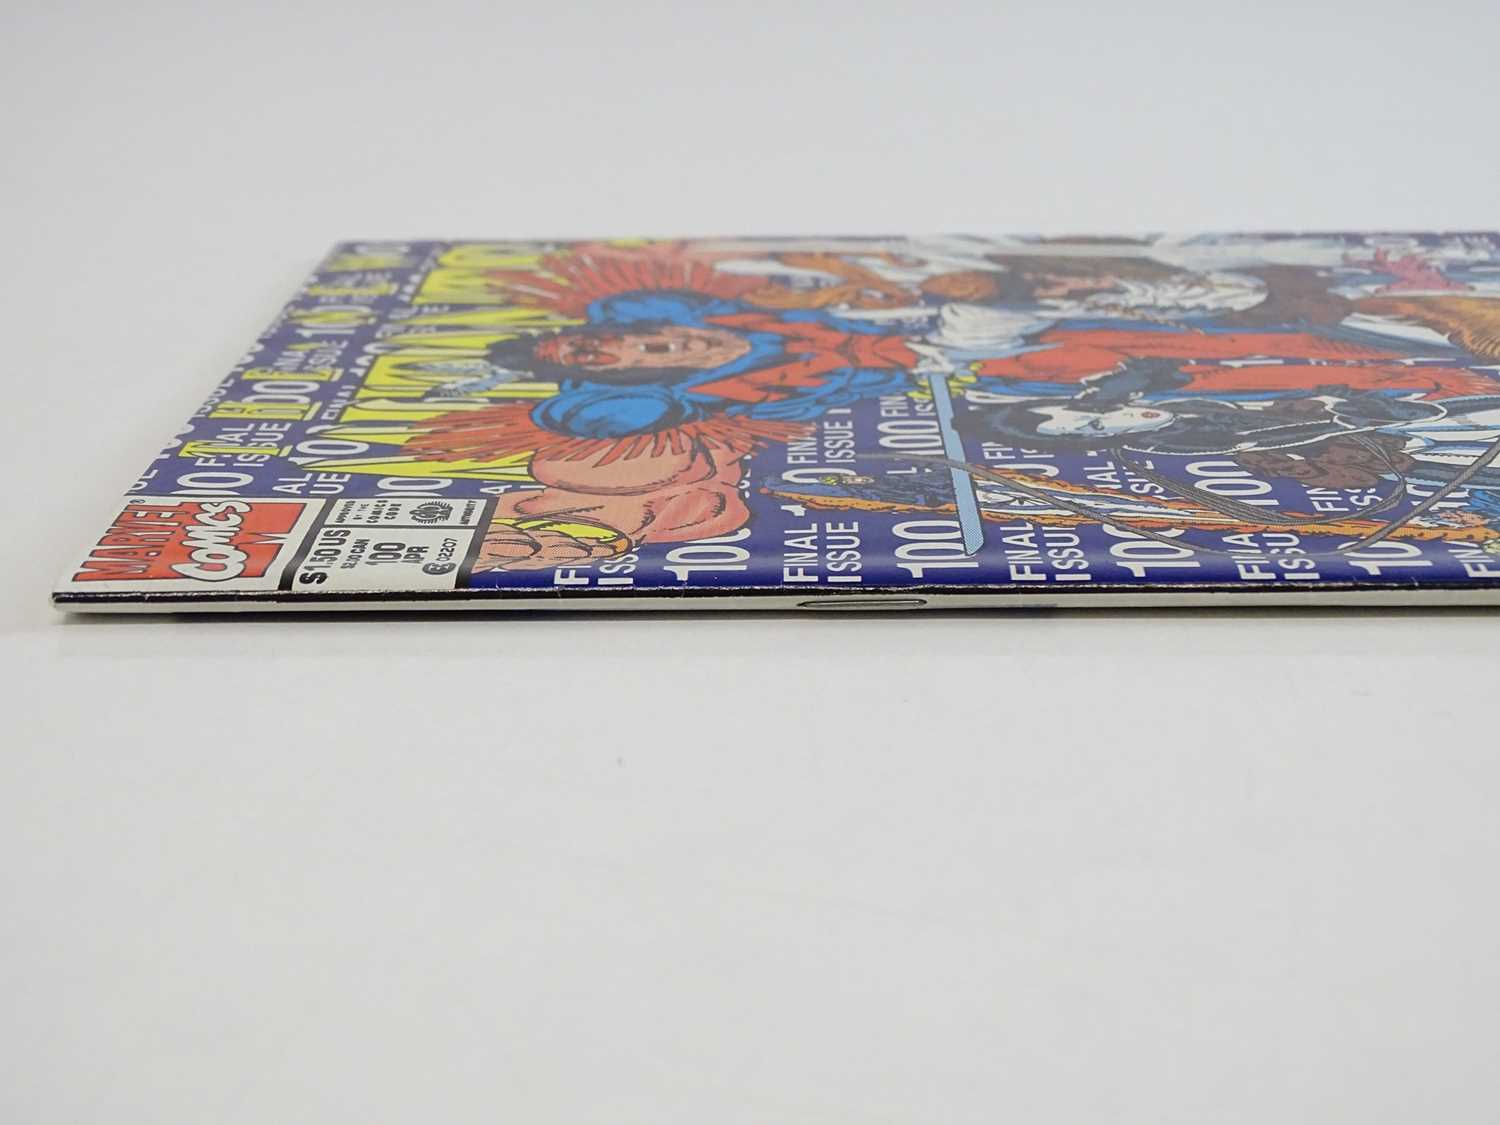 NEW MUTANTS #100 - (1991 - MARVEL) - First appearance of X-Force + Last Issue of the Title - Rob - Image 8 of 9